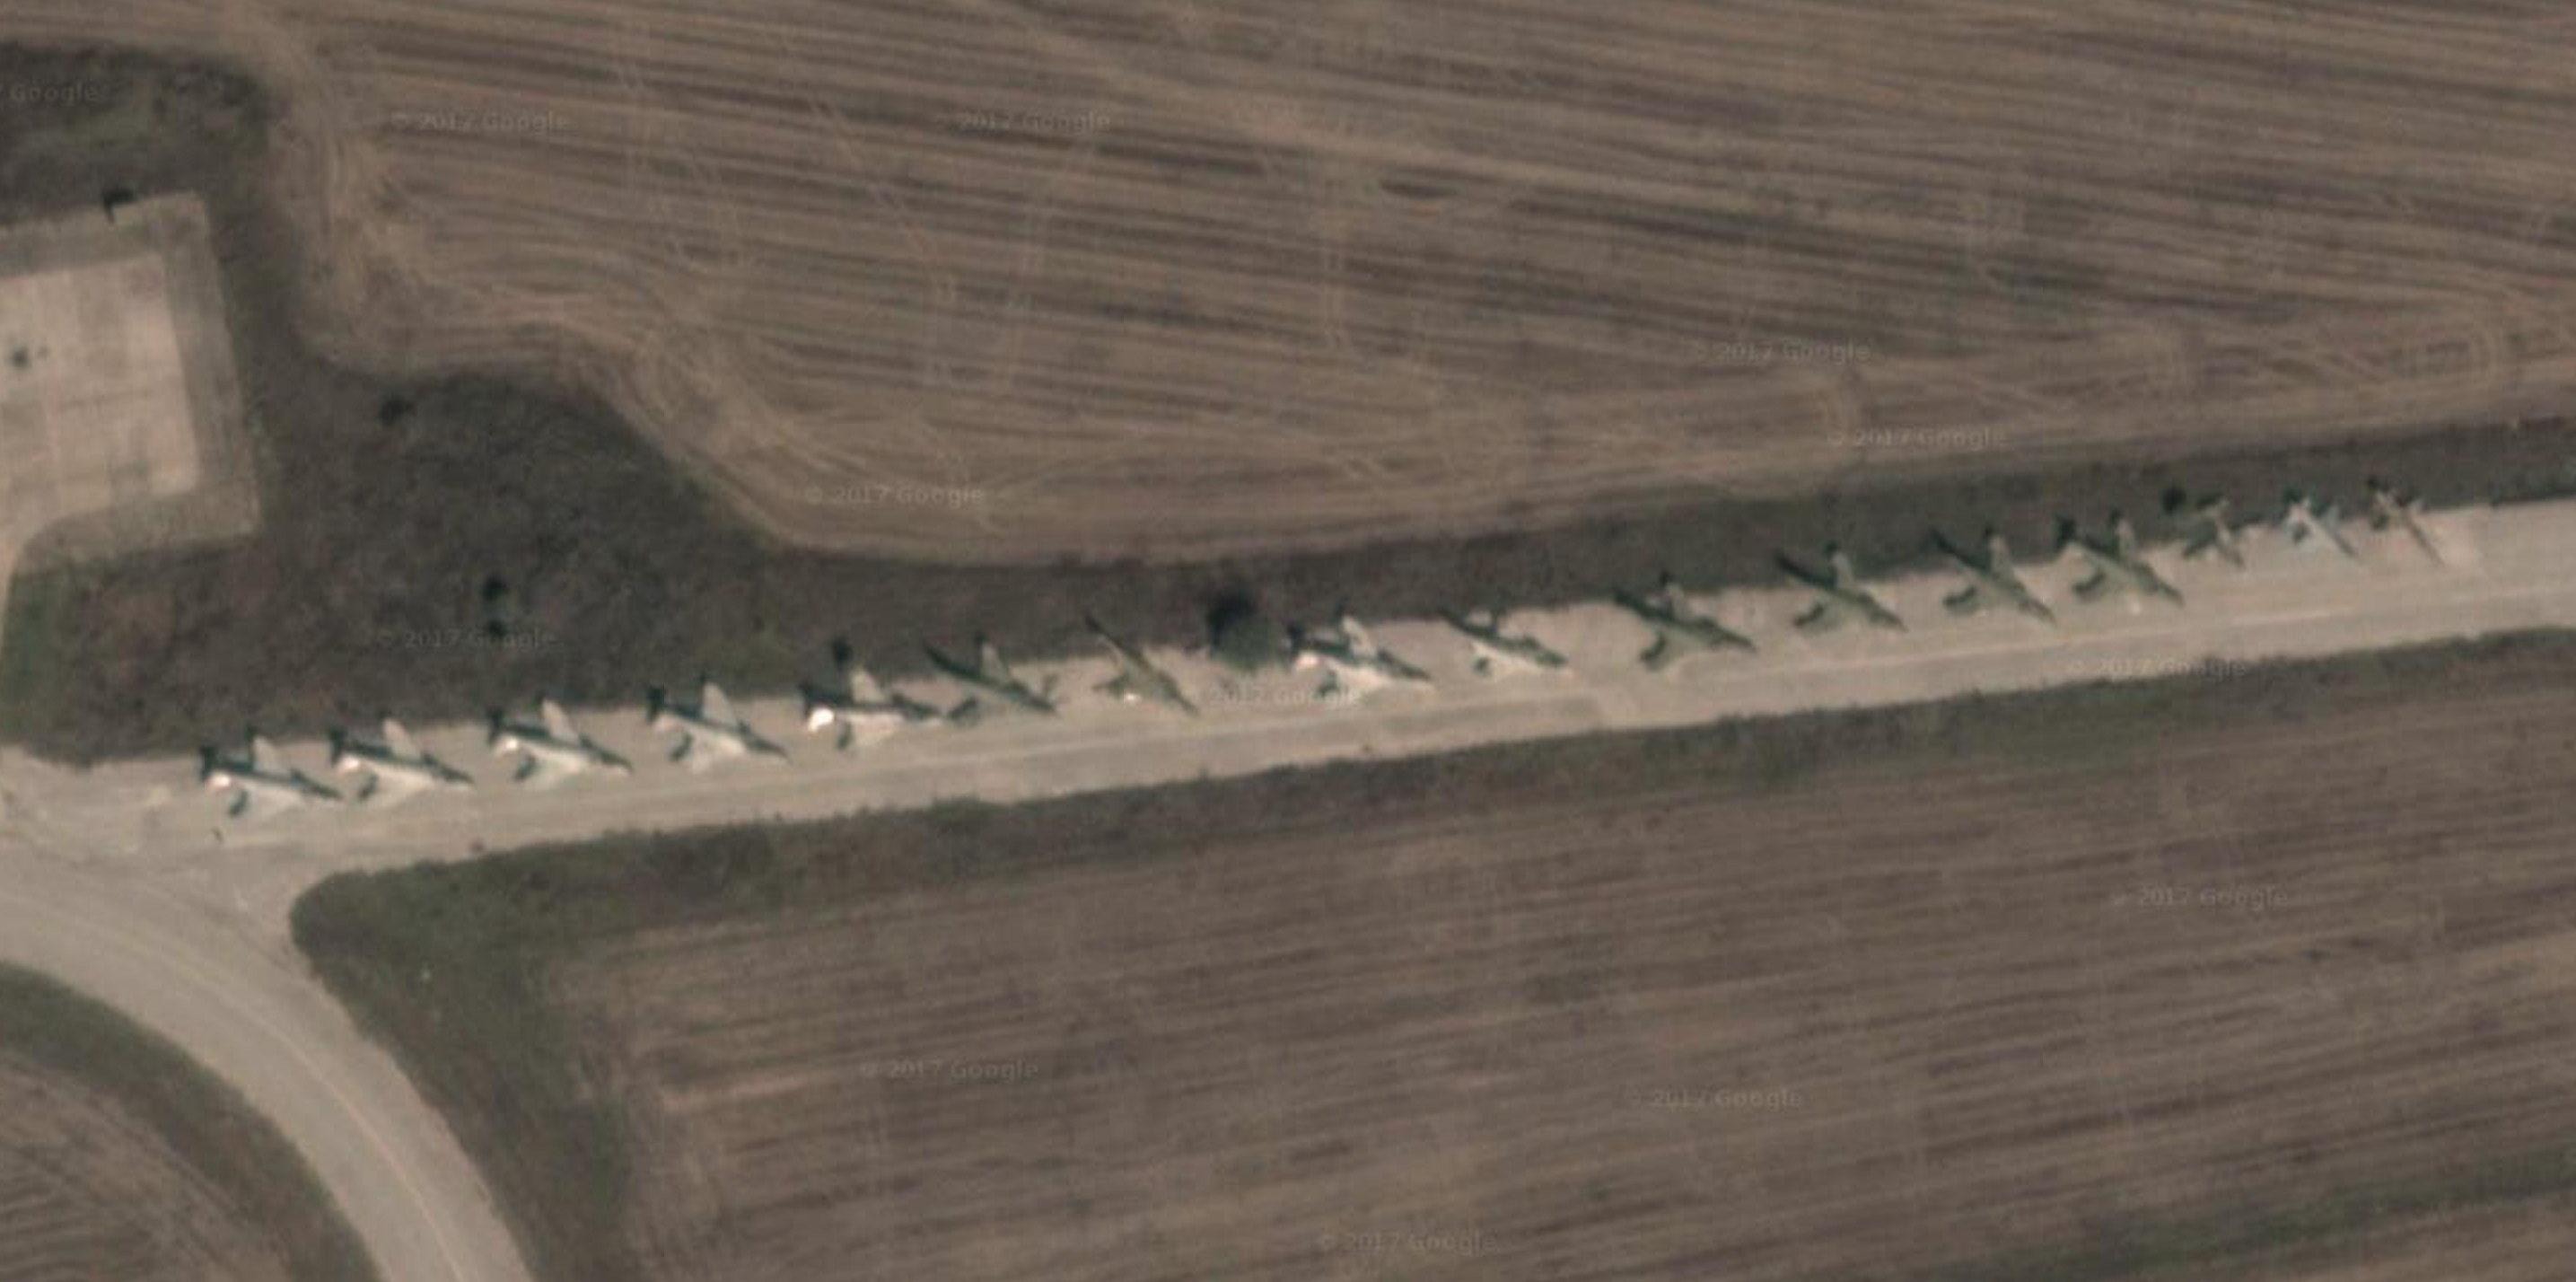 Some of the retired RF-4Es serving as decoys and parts sources at Larissa. (Photo via Googlemaps)